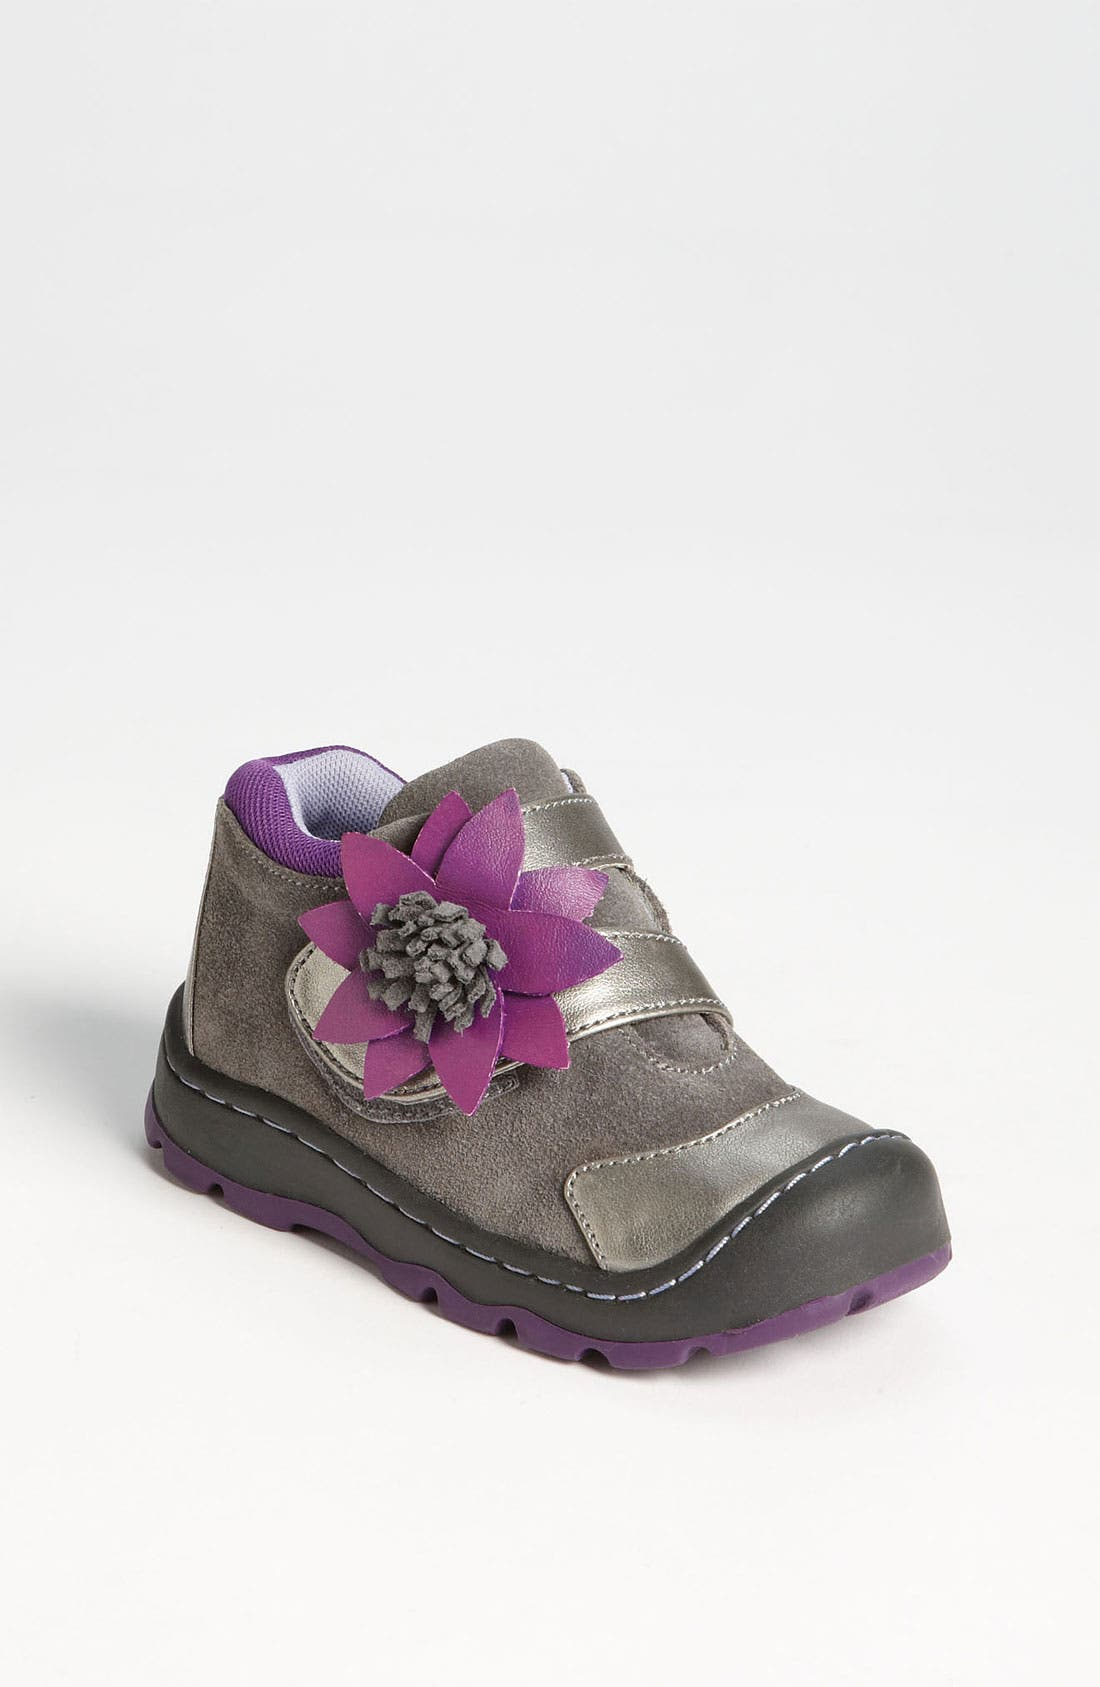 Alternate Image 1 Selected - Jumping Jacks 'Flower Burst' Sneaker (Walker & Toddler)